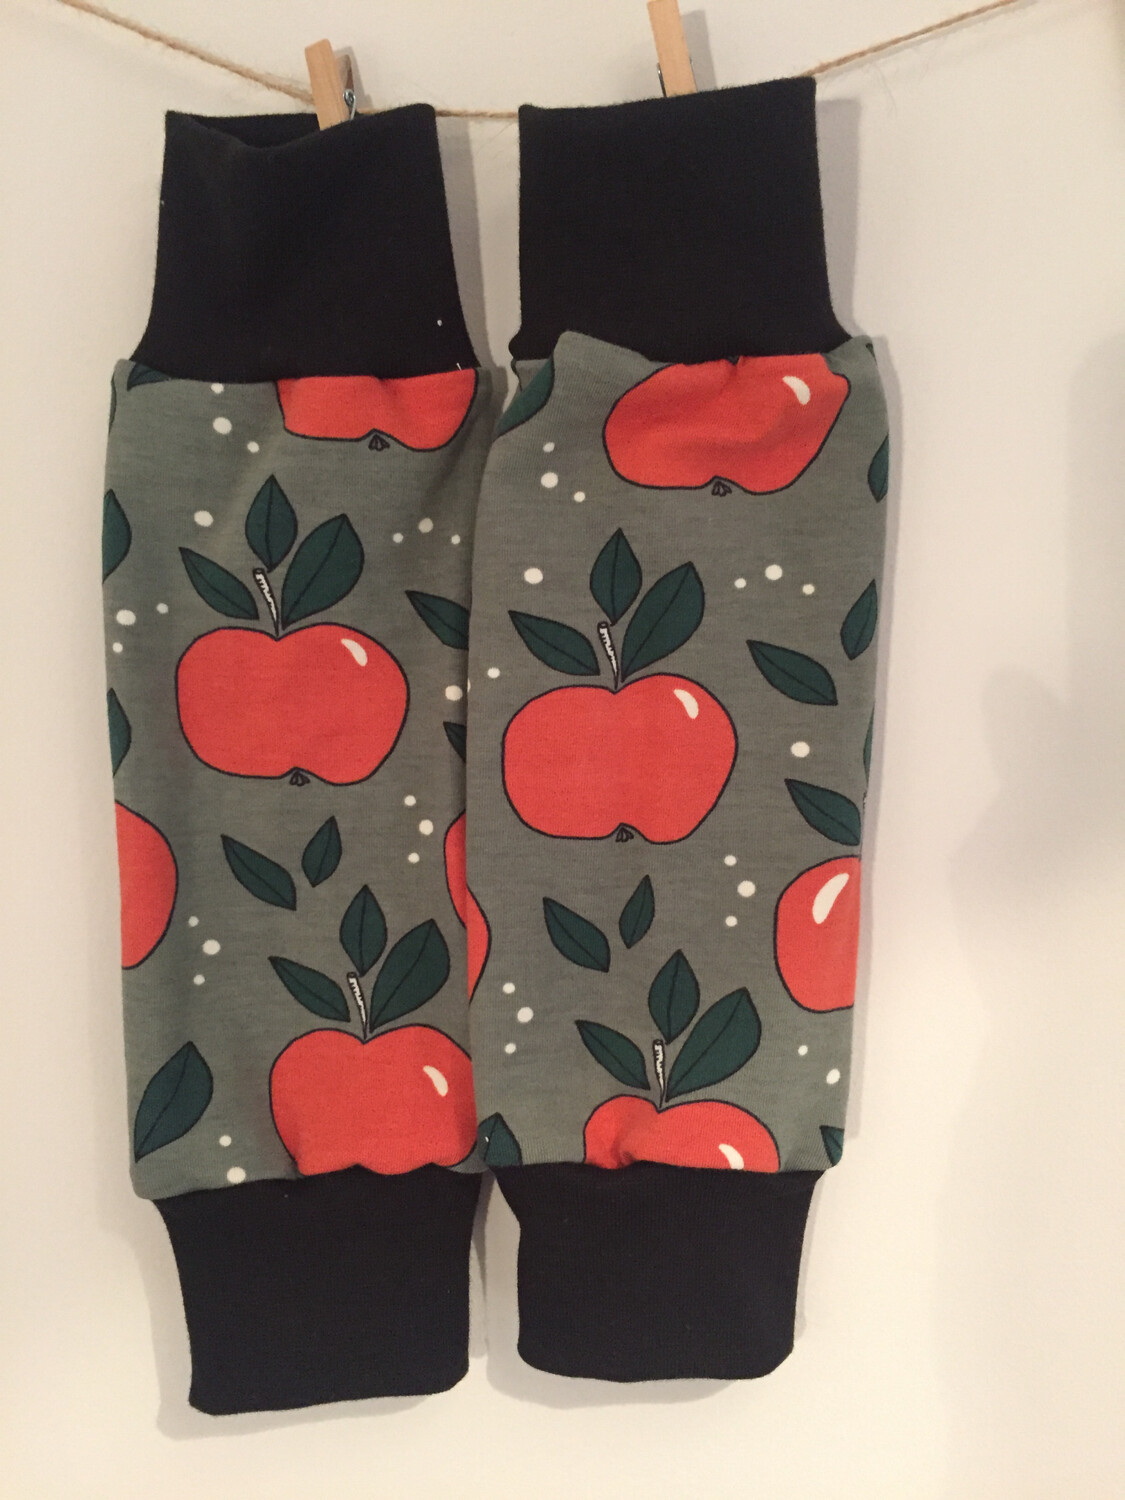 Green & Red Apple Print Baby Leg Warmers - alternative cuffs available